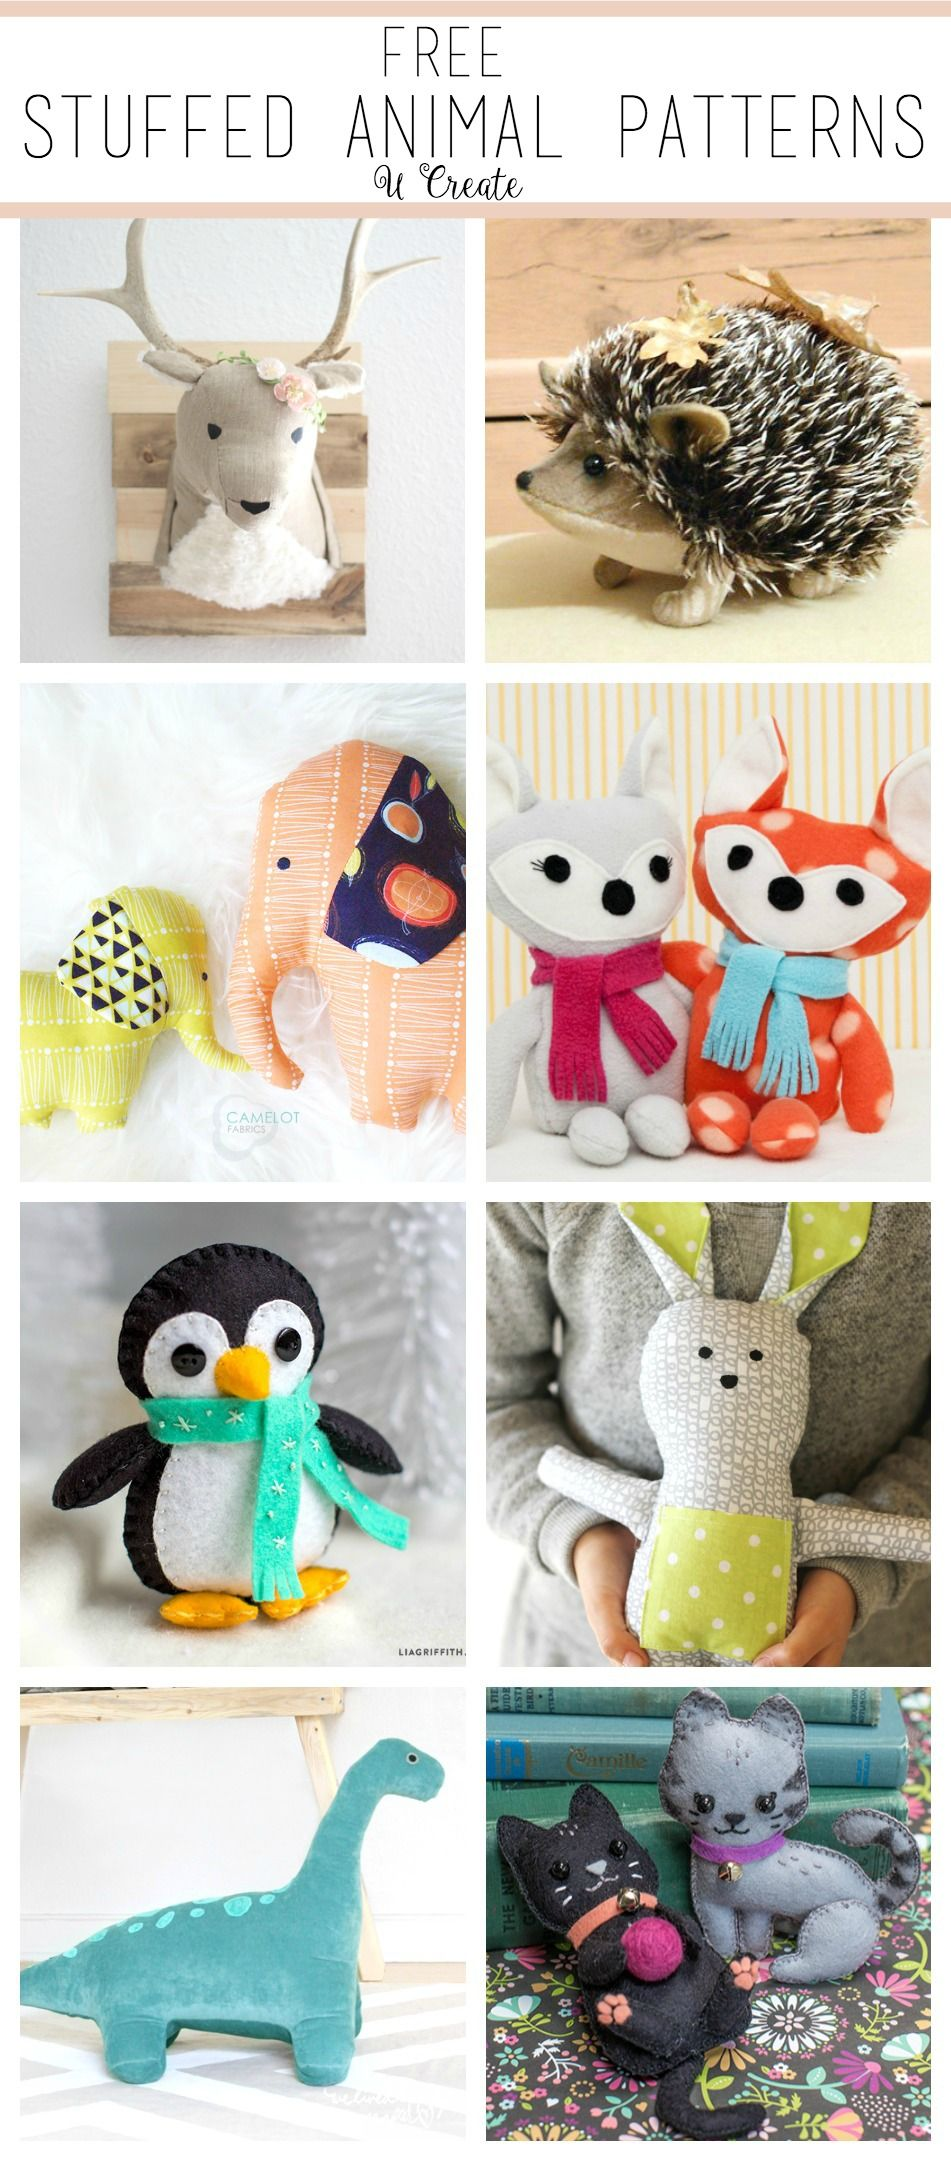 Stuffed Animal Pattern Free : stuffed, animal, pattern, Stuffed, Animal, Patterns, Cutest!, Create, Sewing, Animals,, Patterns,, Projects